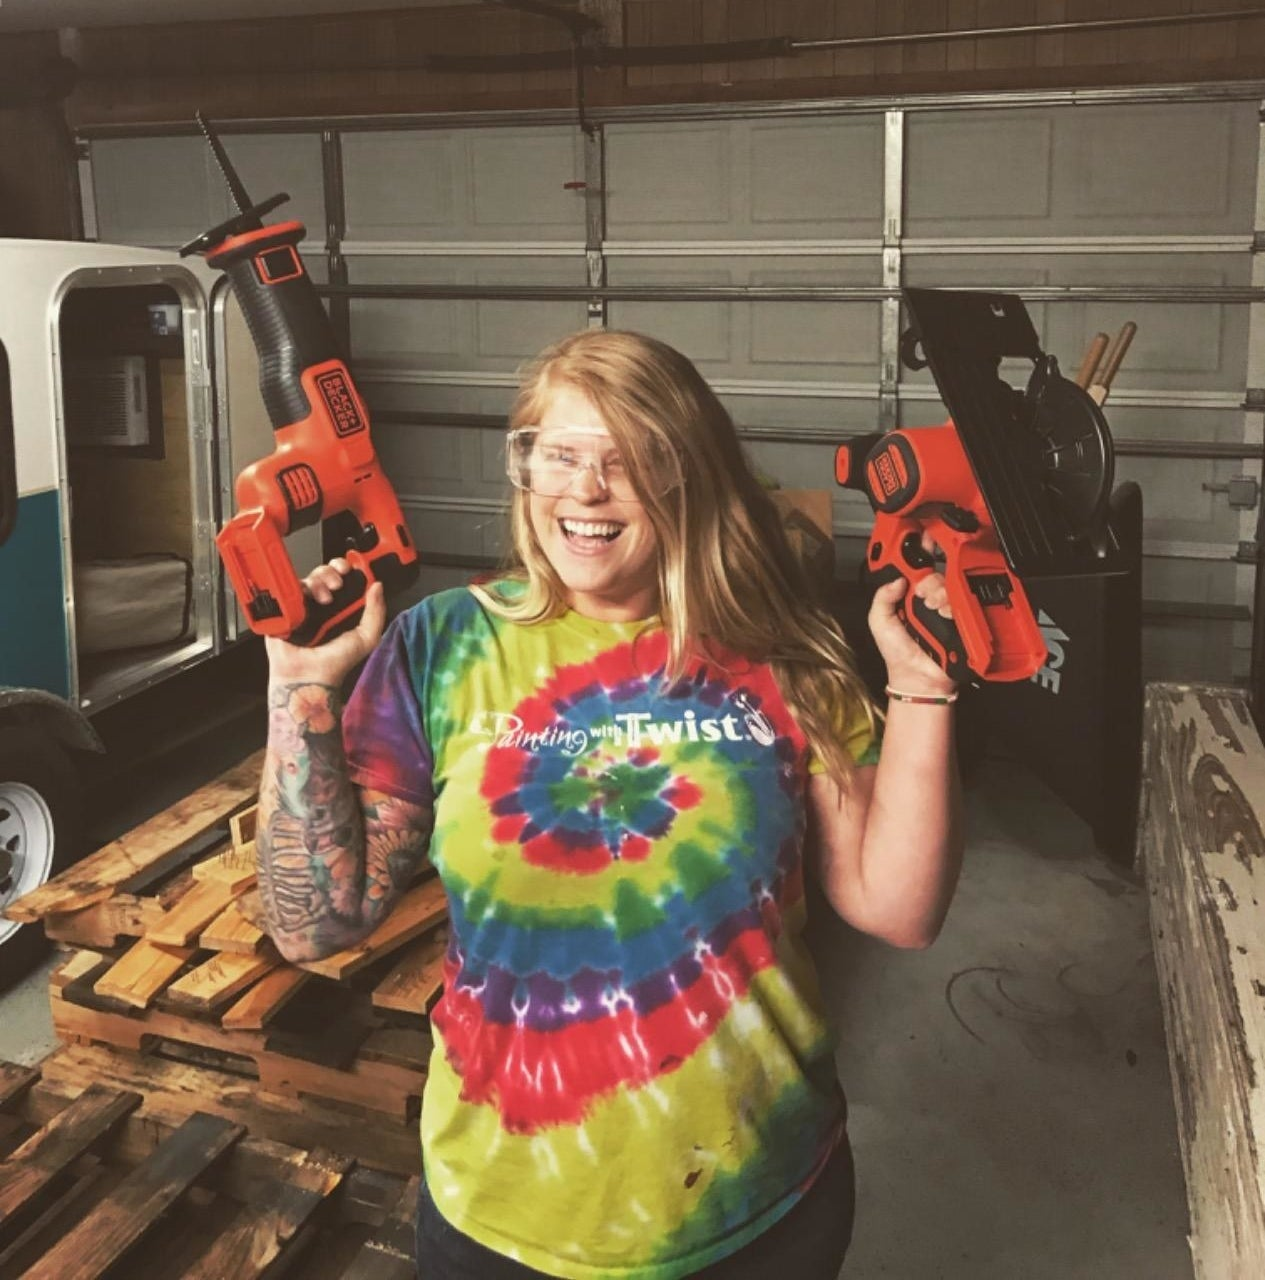 Reviewer is holding two power tools in each hand while smiling